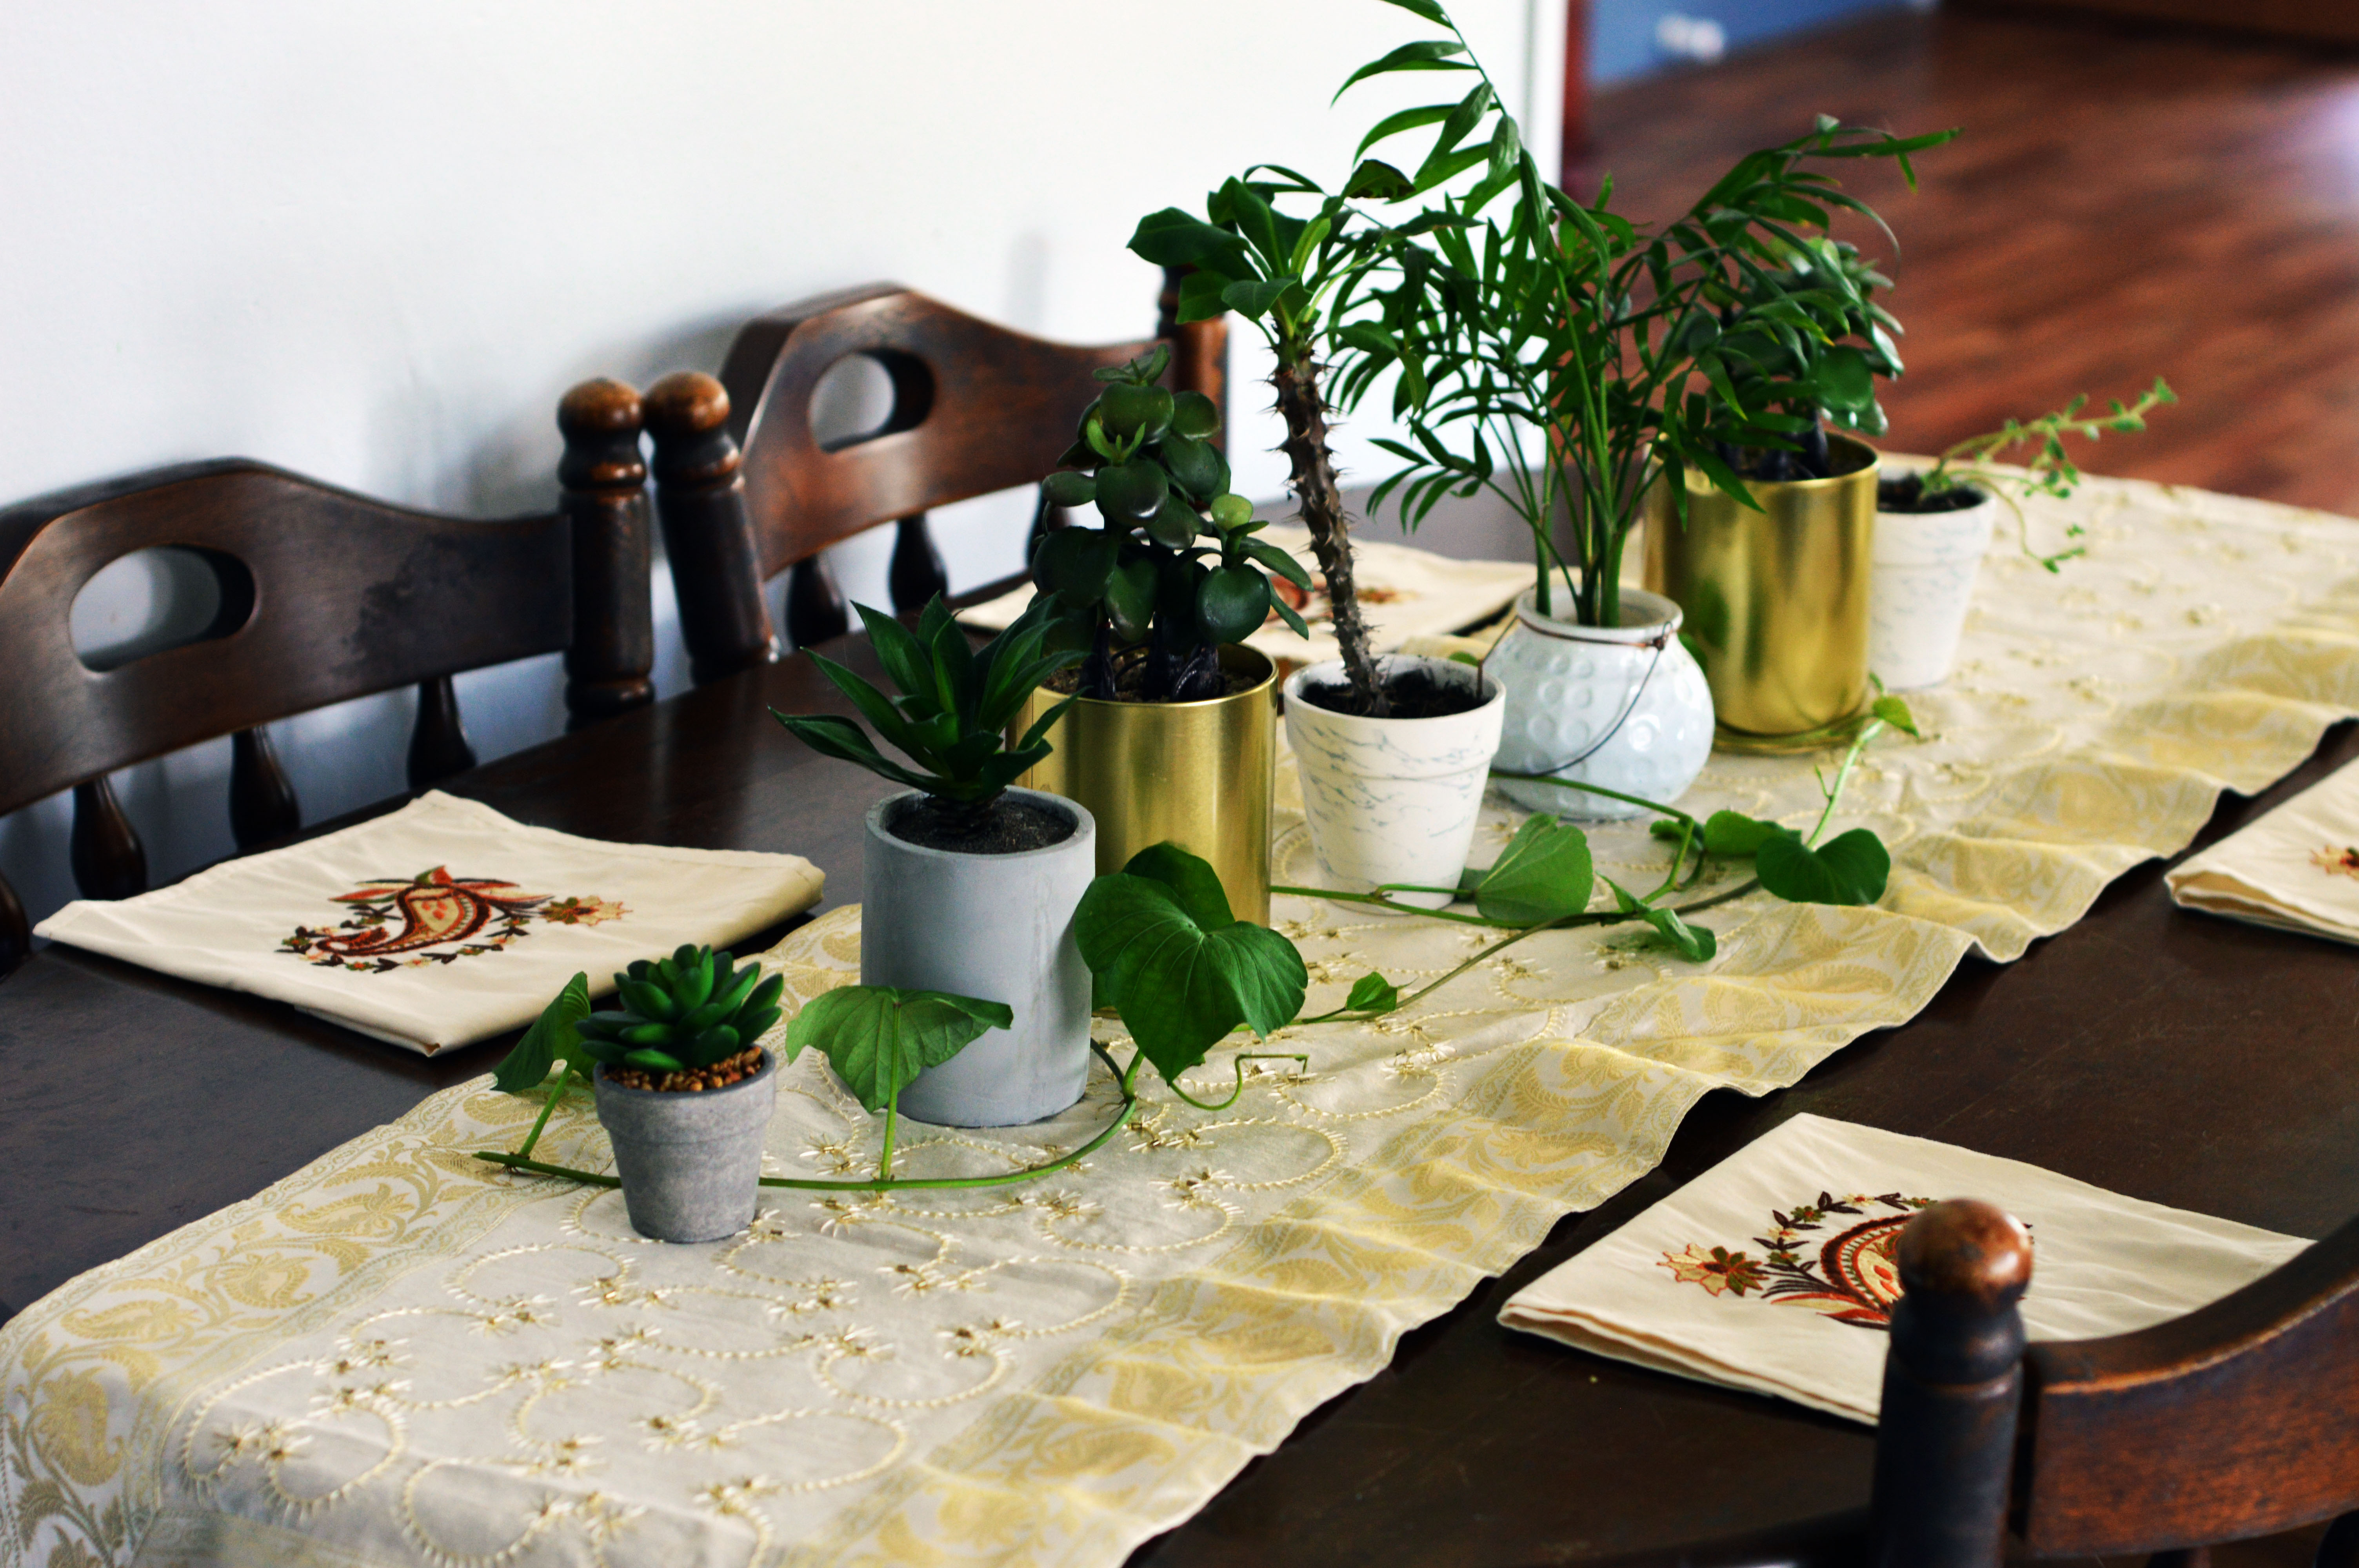 live-plants-succulents-on-kitchen-table-layout